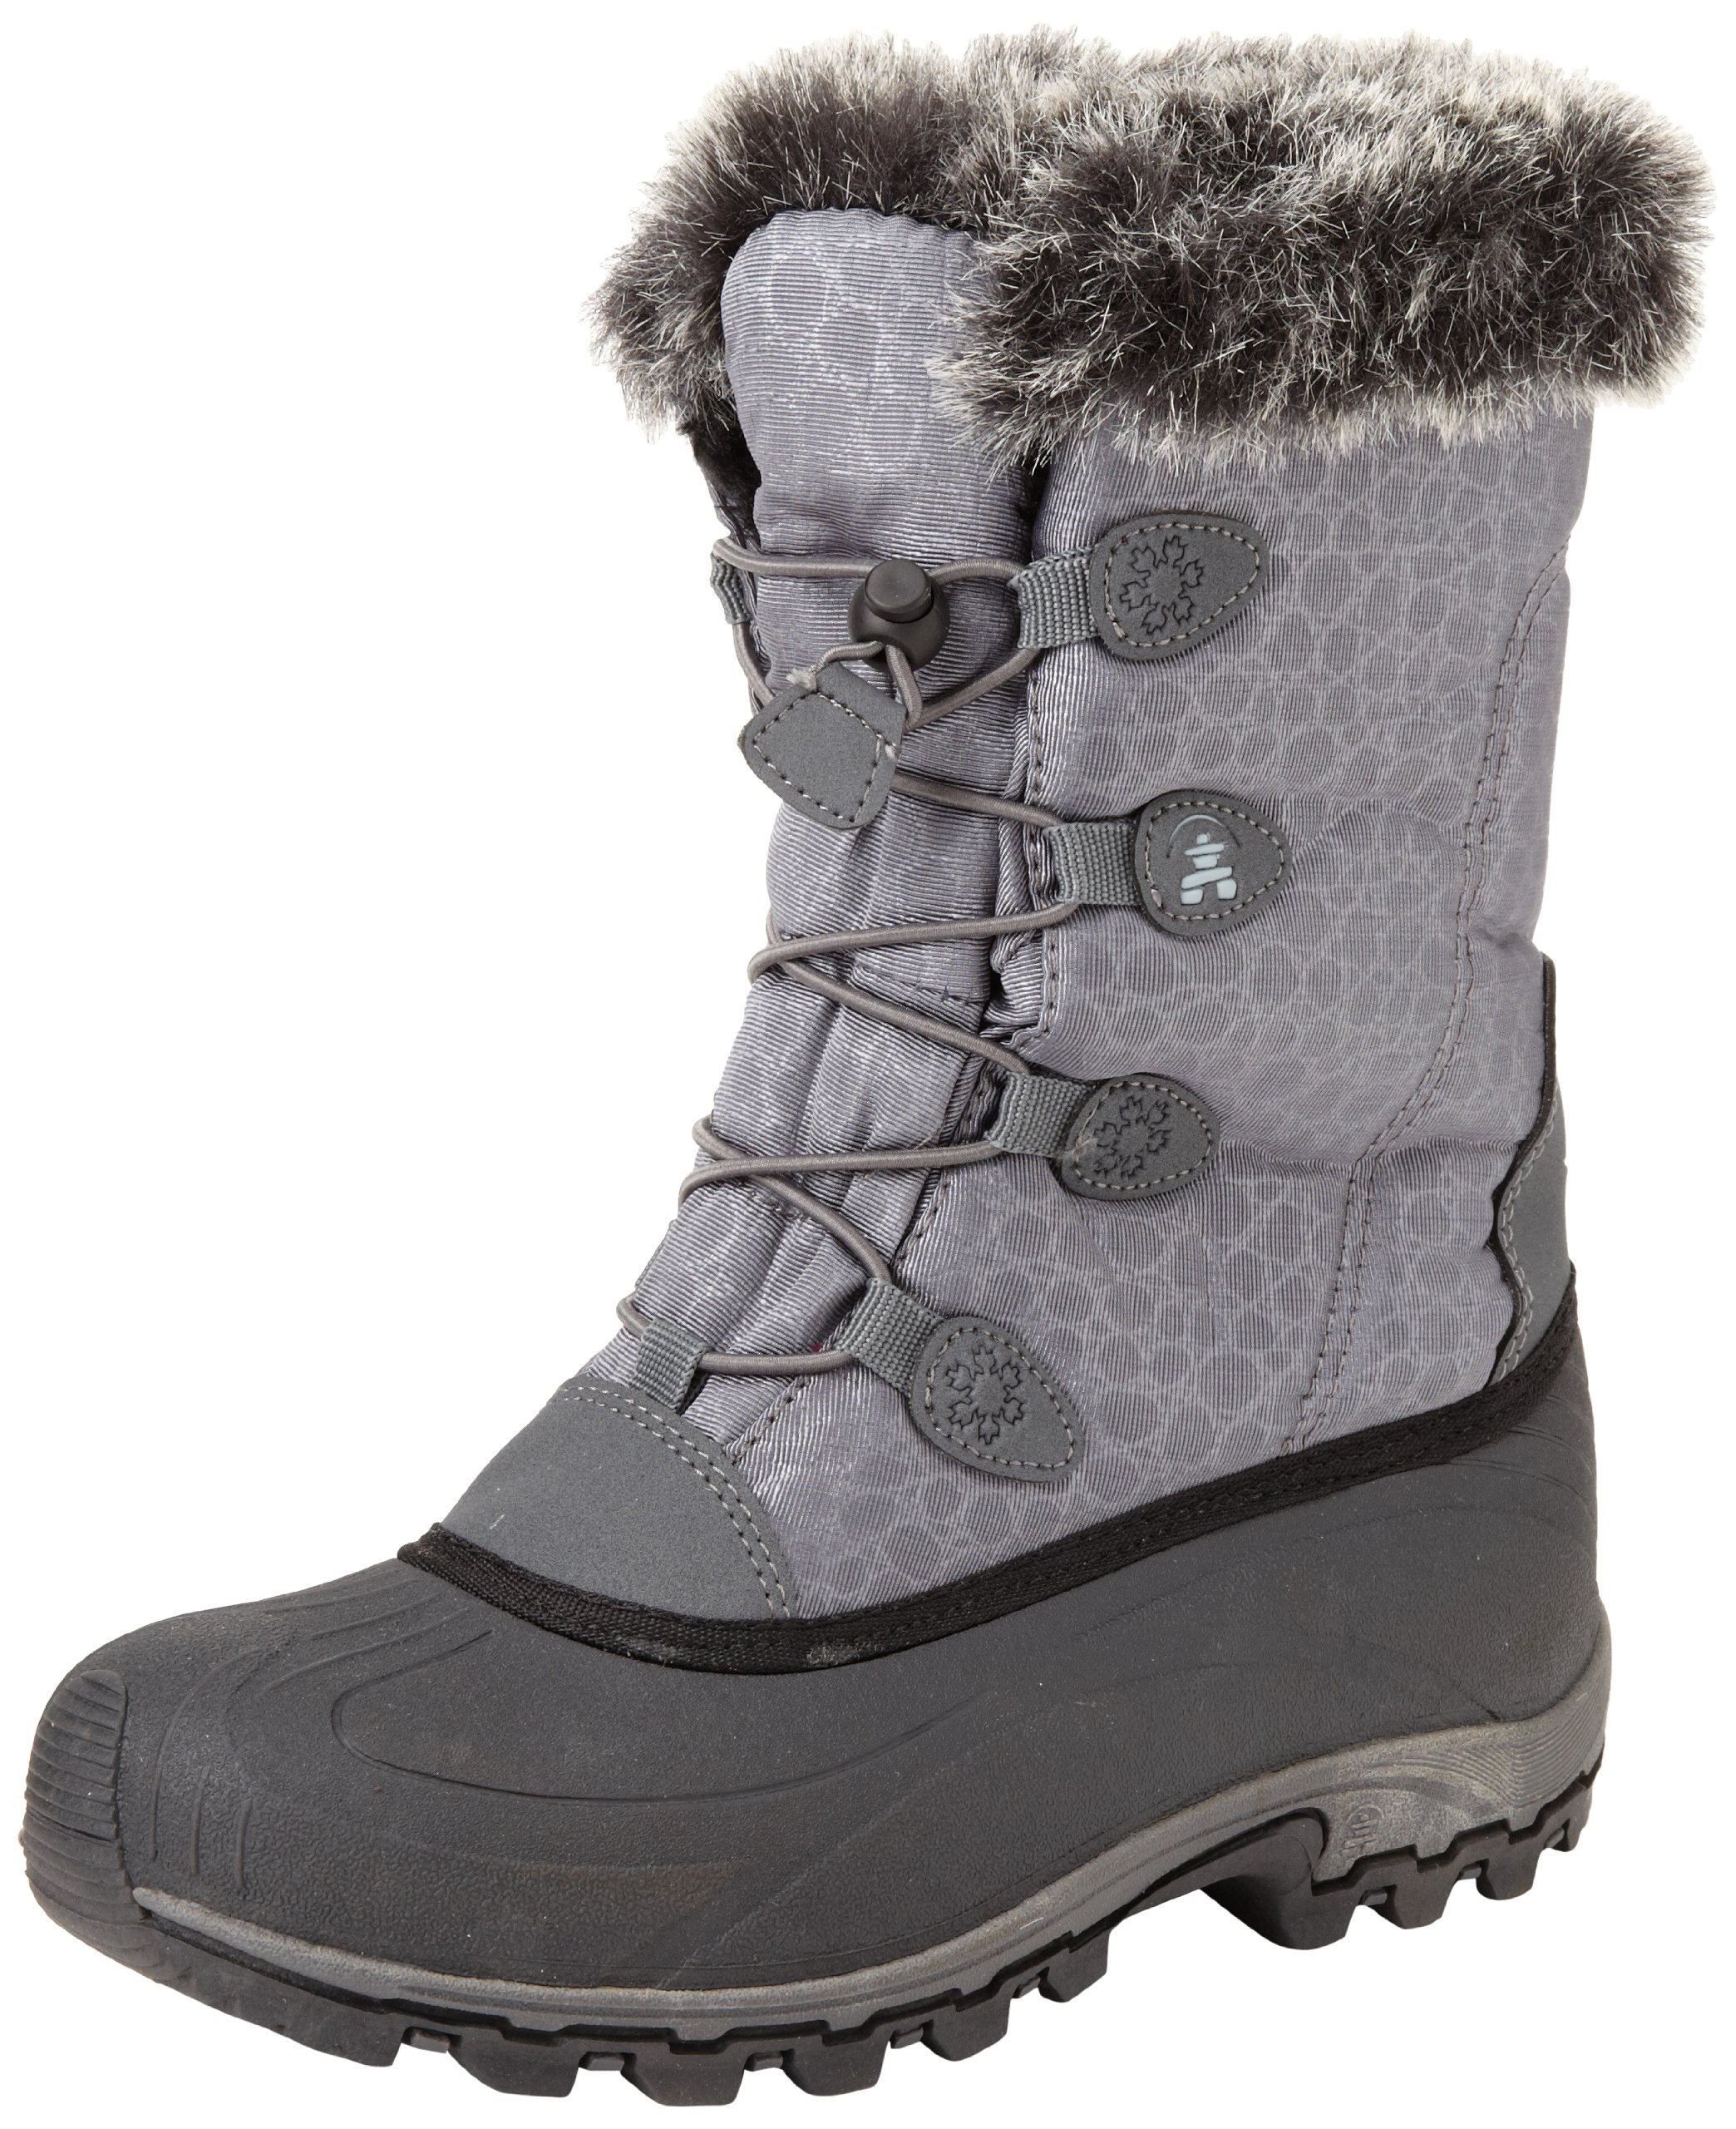 Kamik Women's Momentum Snow Boot,Charcoal,6 M US